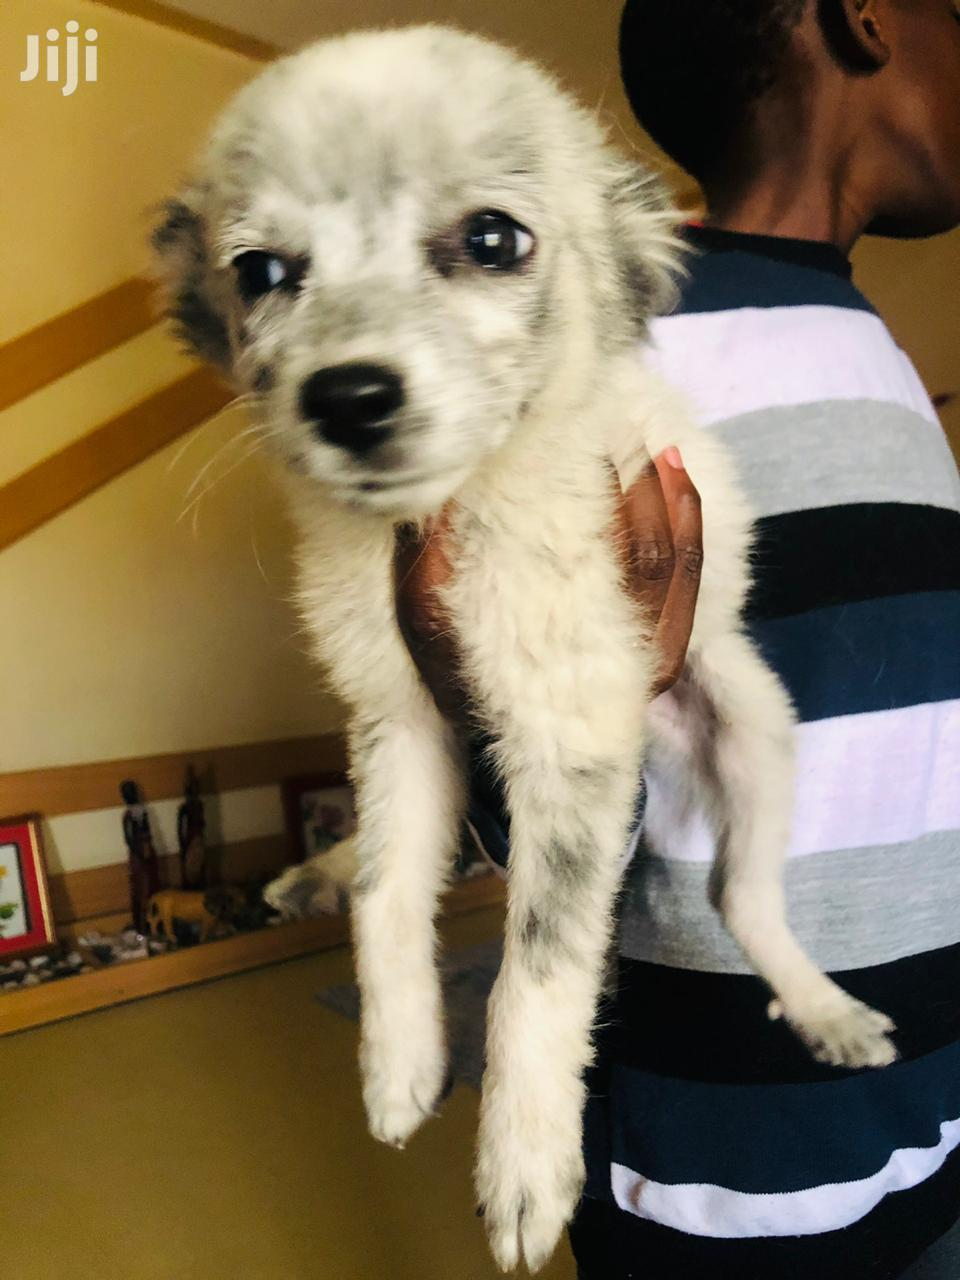 Archive: 3-6 month Male Mixed Breed Japanese Spitz